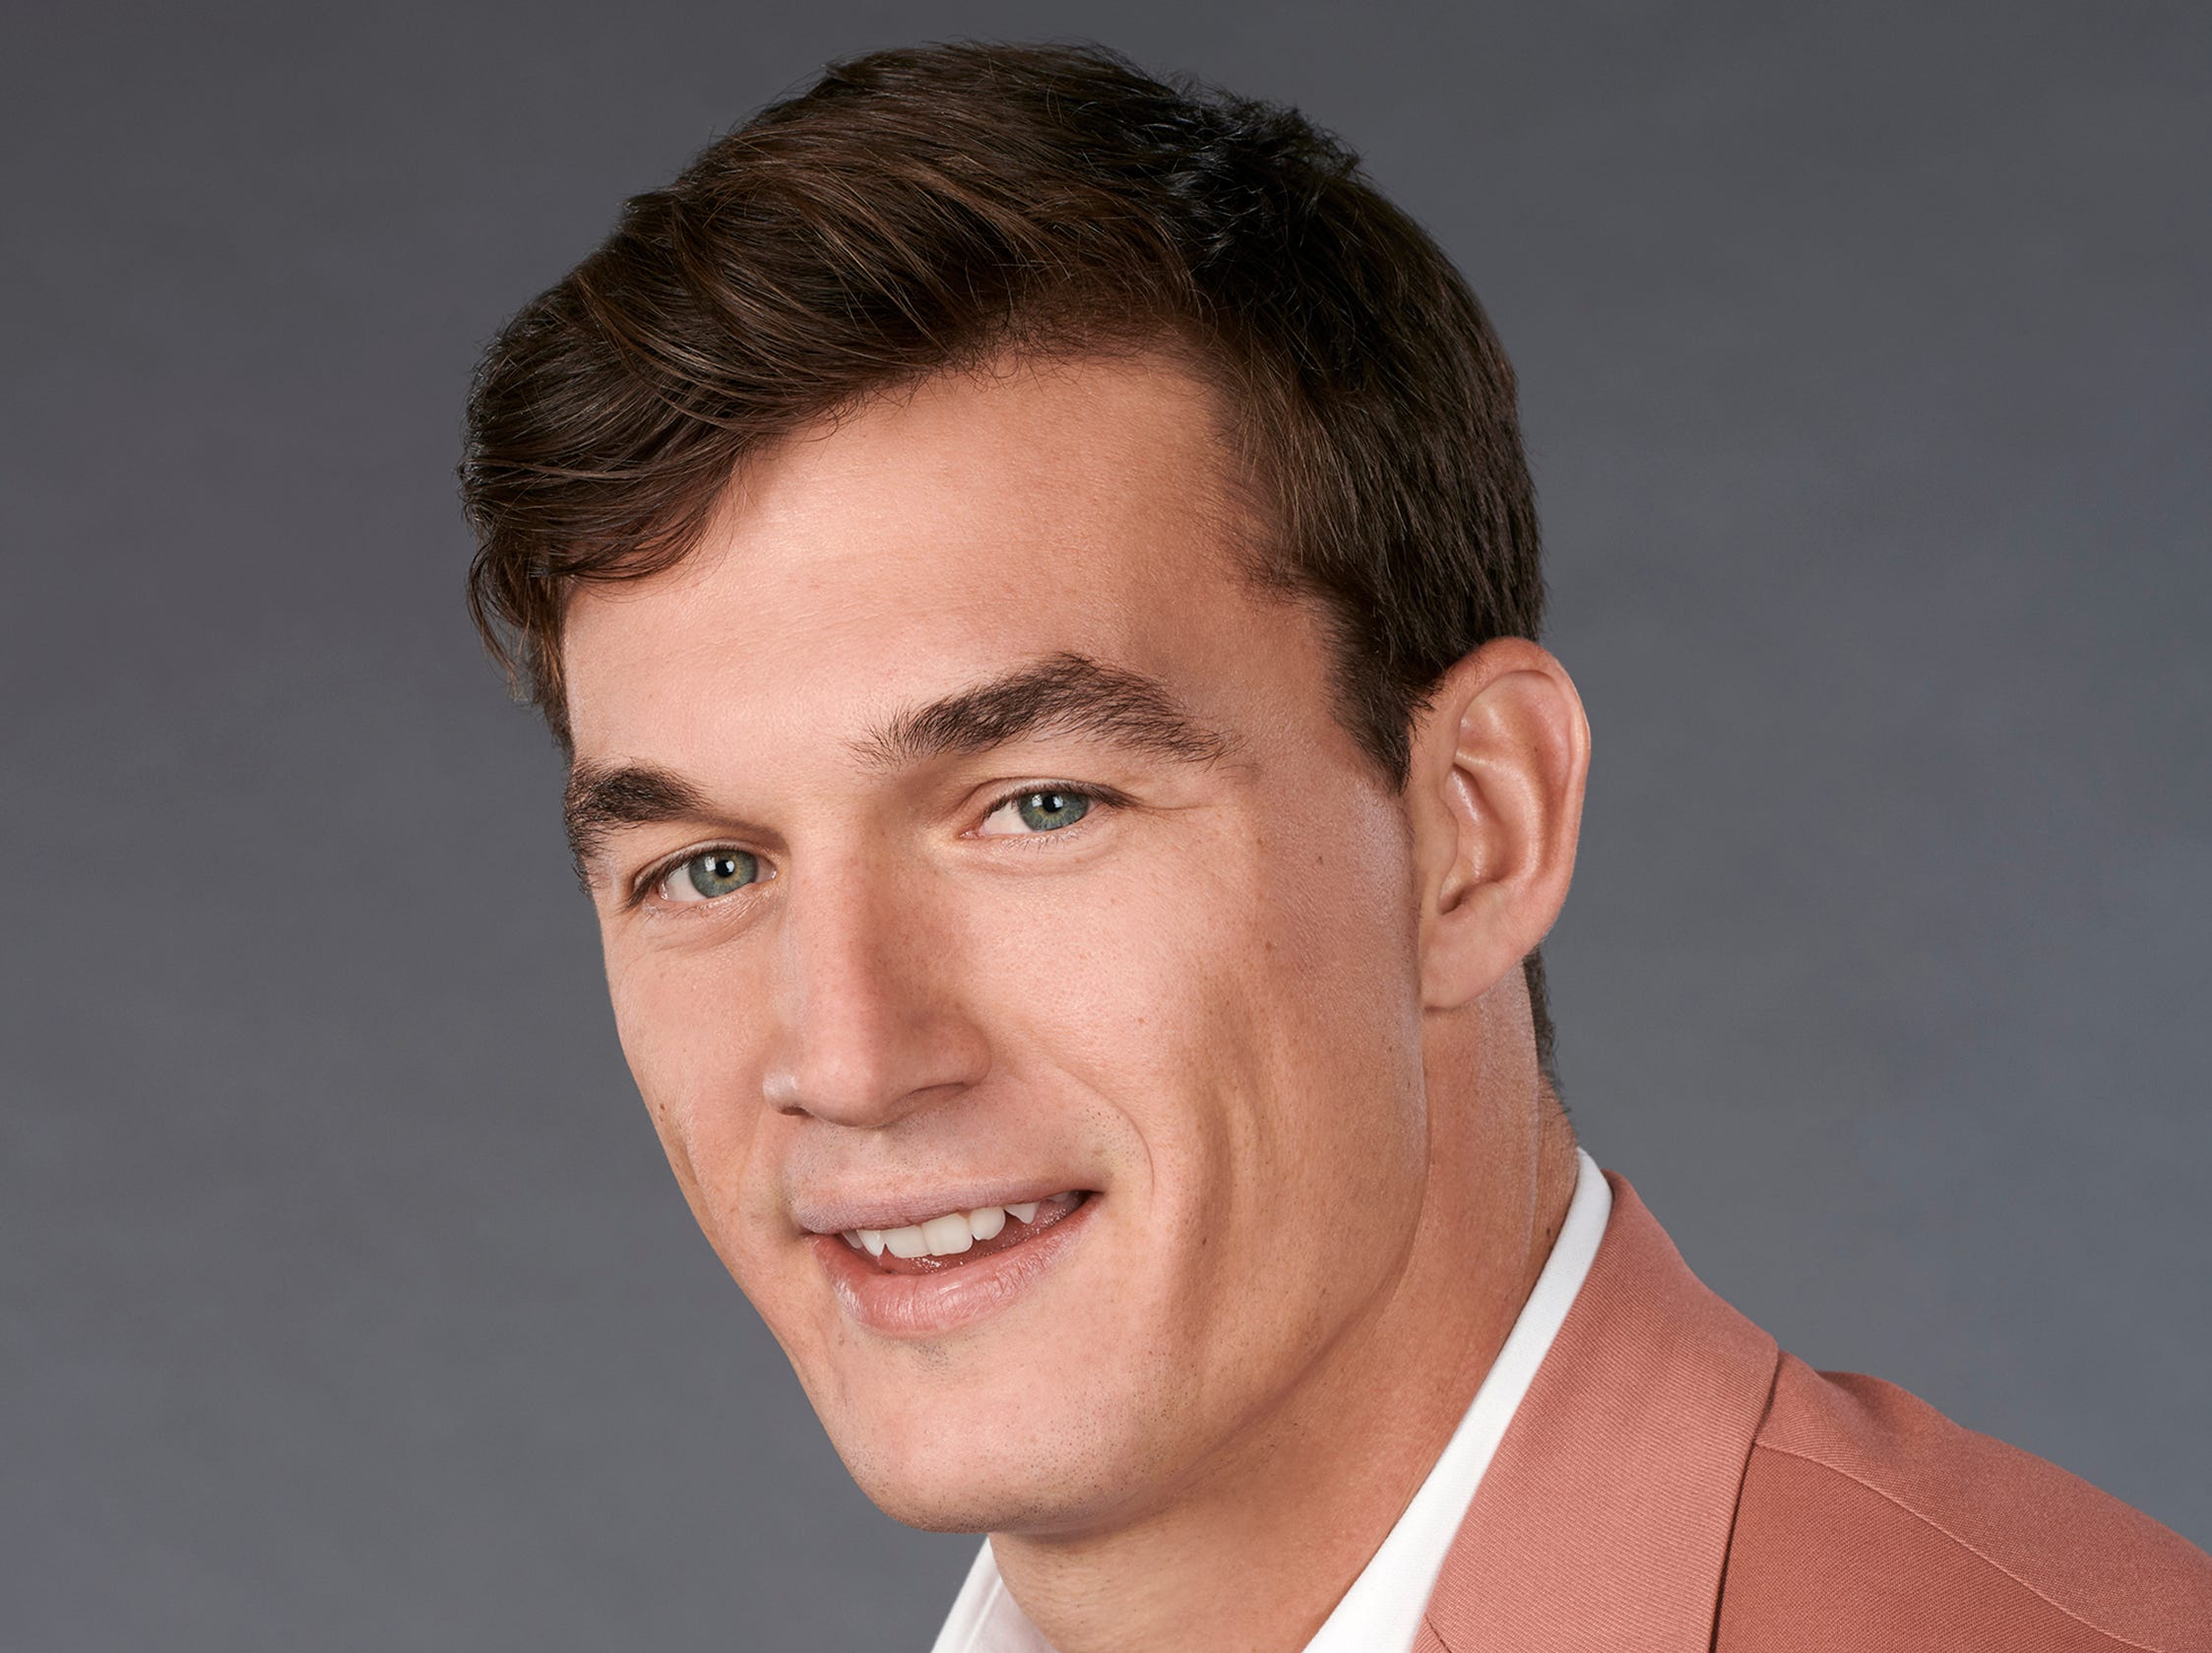 """The Bachelorette"" Season 23 contestant:  Tyler C., 26, Jupiter, Florida, general contractor"